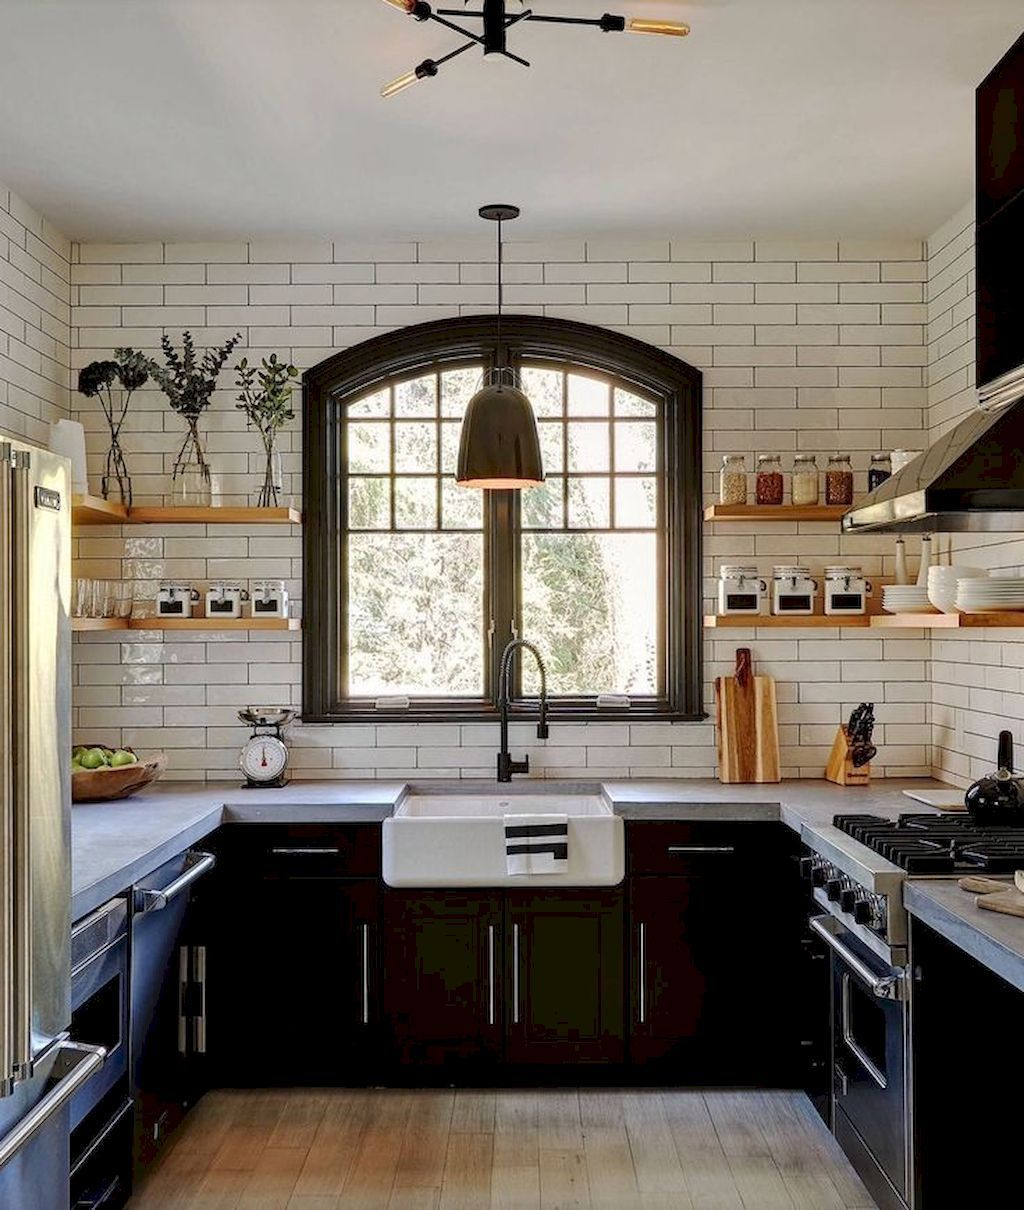 If you  re looking to design the modern farmhouse kitchen of your dreams look also home decor outlets bathroom inspiration interior spaces in rh pinterest